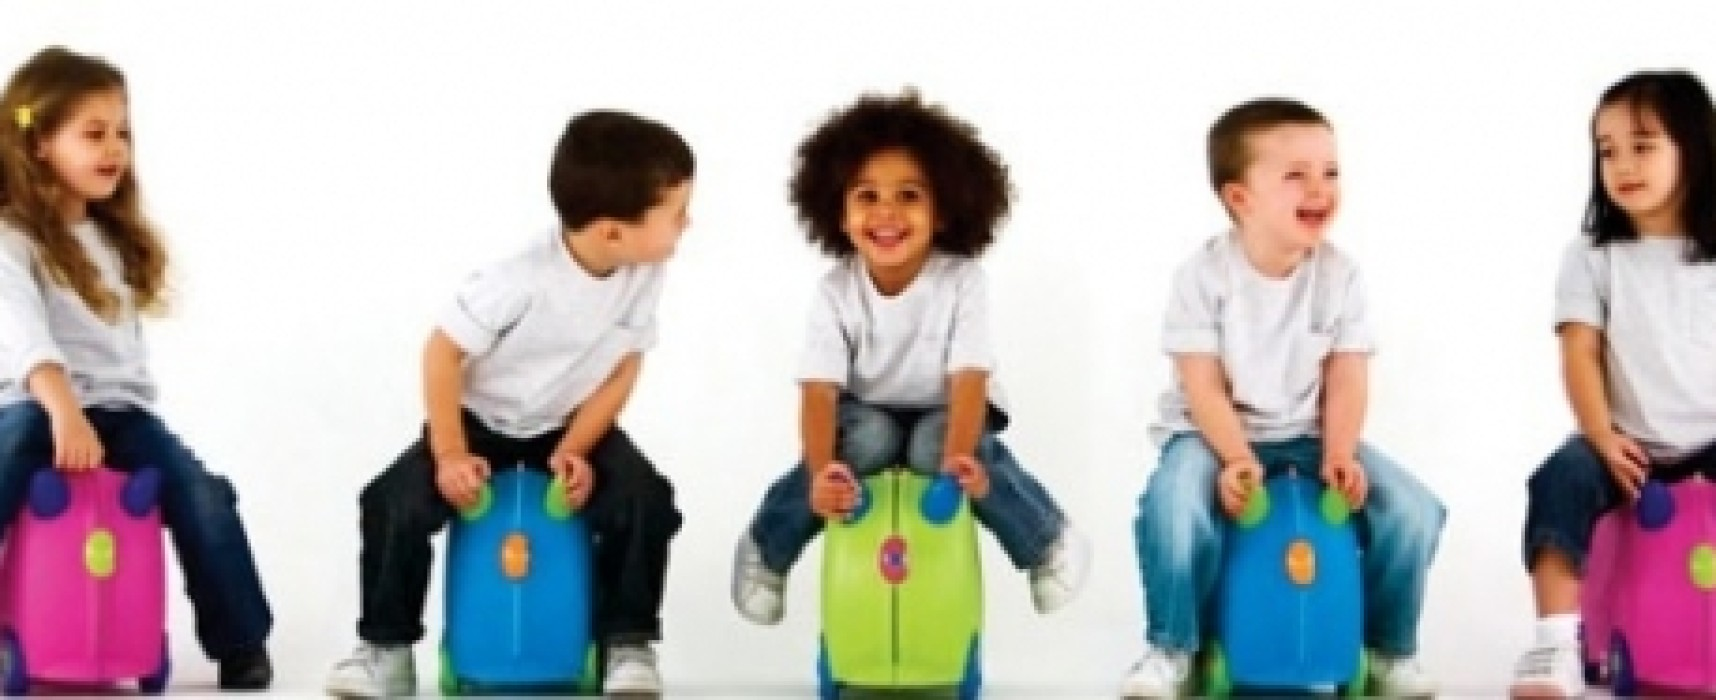 Keep the little ones occupied during travelling with Trunki Luggage